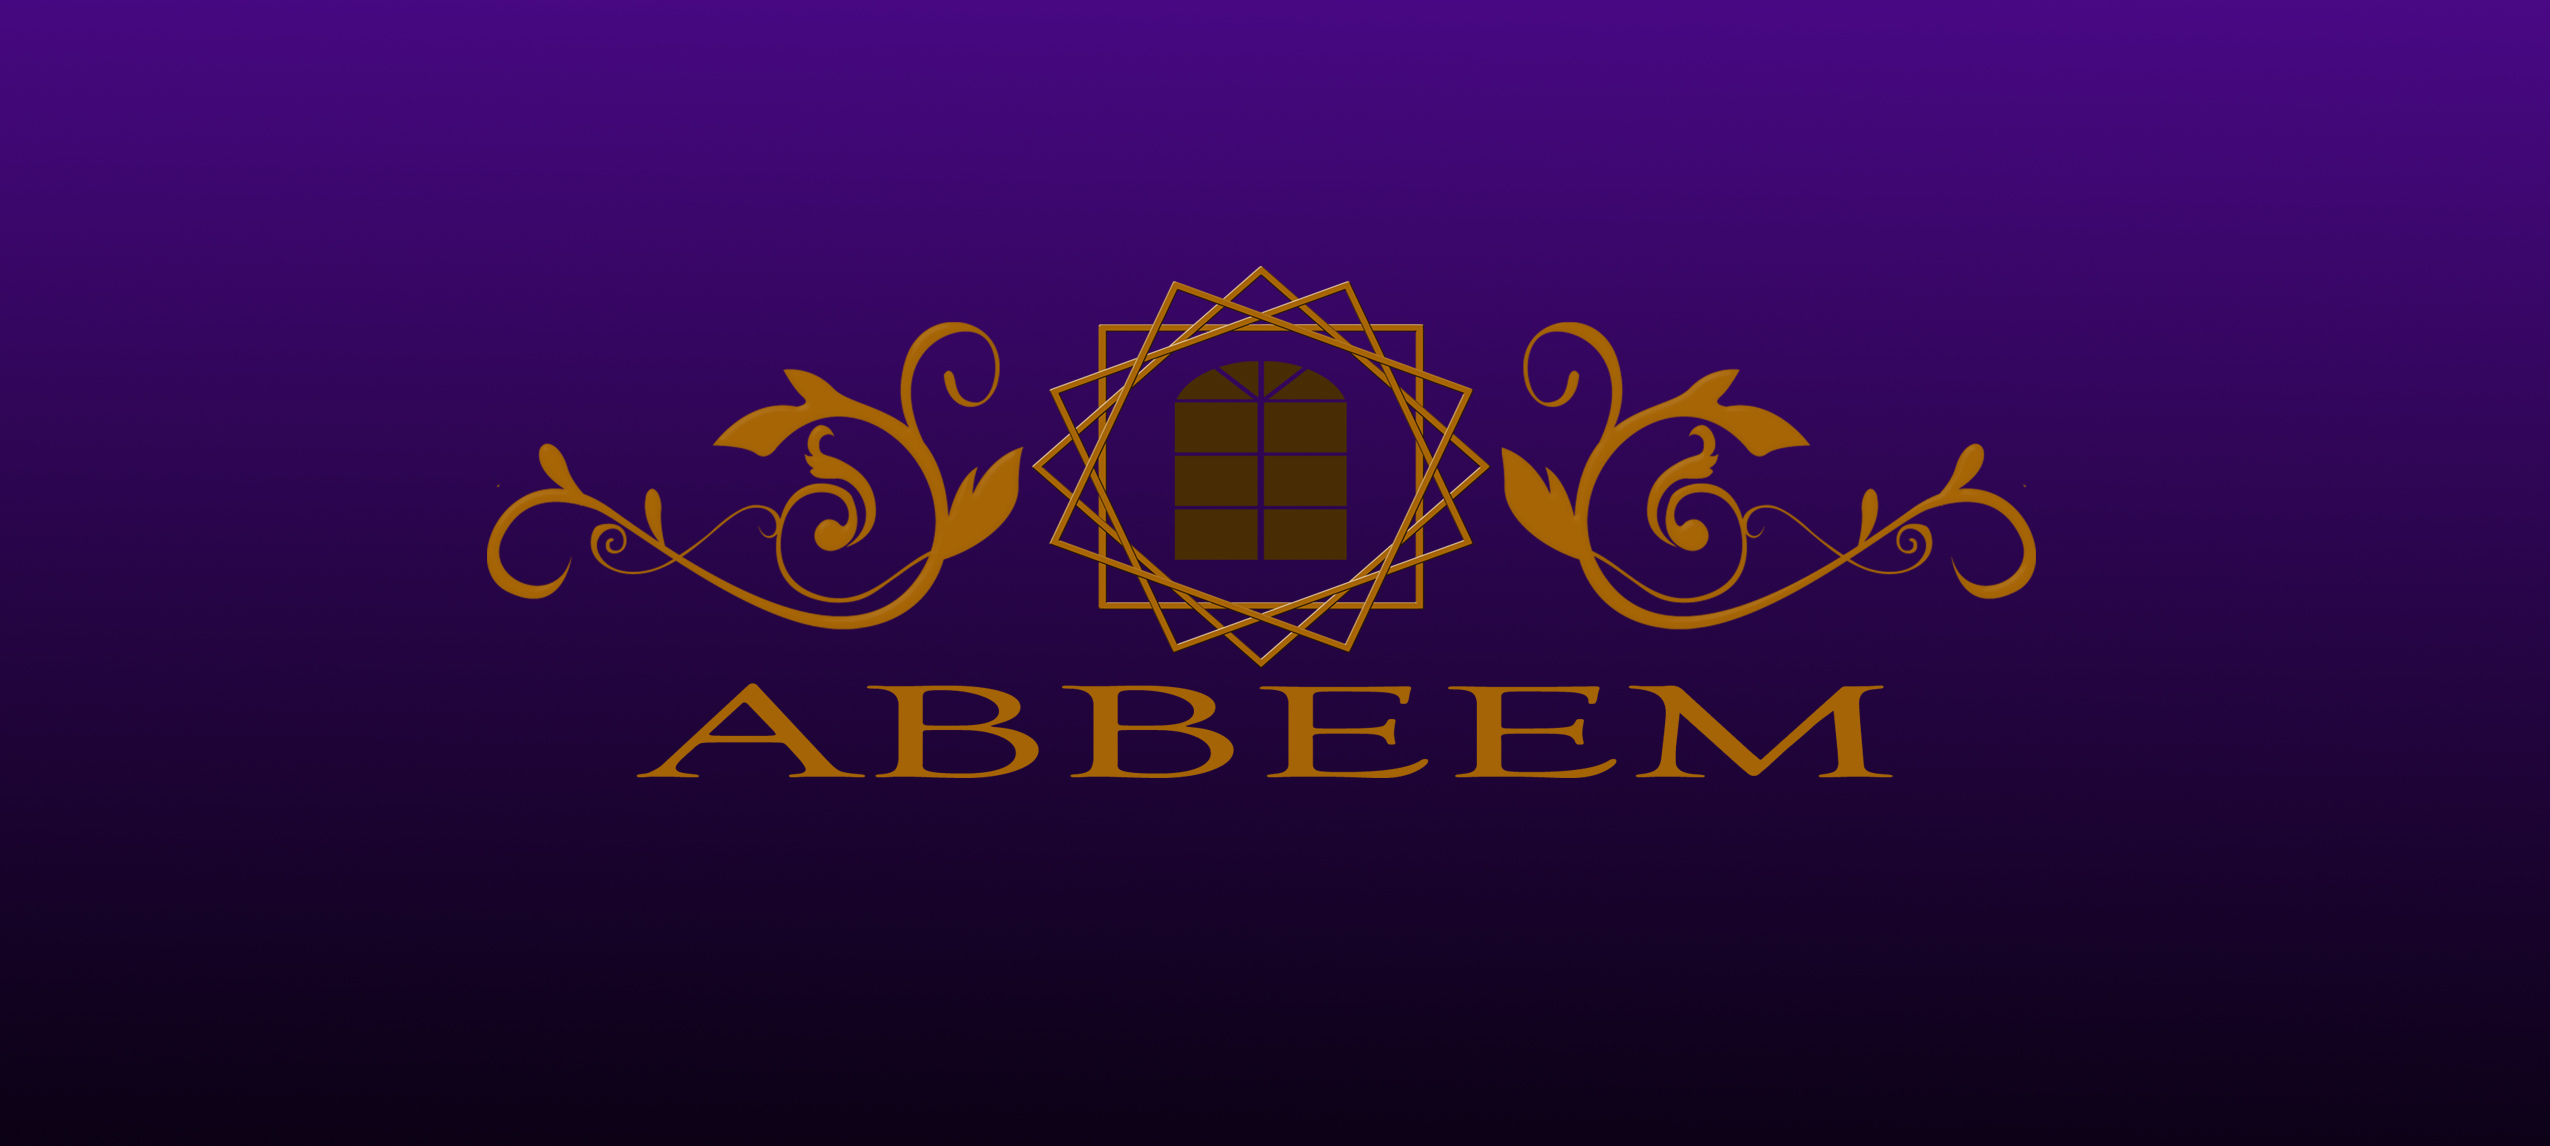 Logo Design by Arqui ACOSTA - Entry No. 239 in the Logo Design Contest Luxury Logo Design for Abbeem.